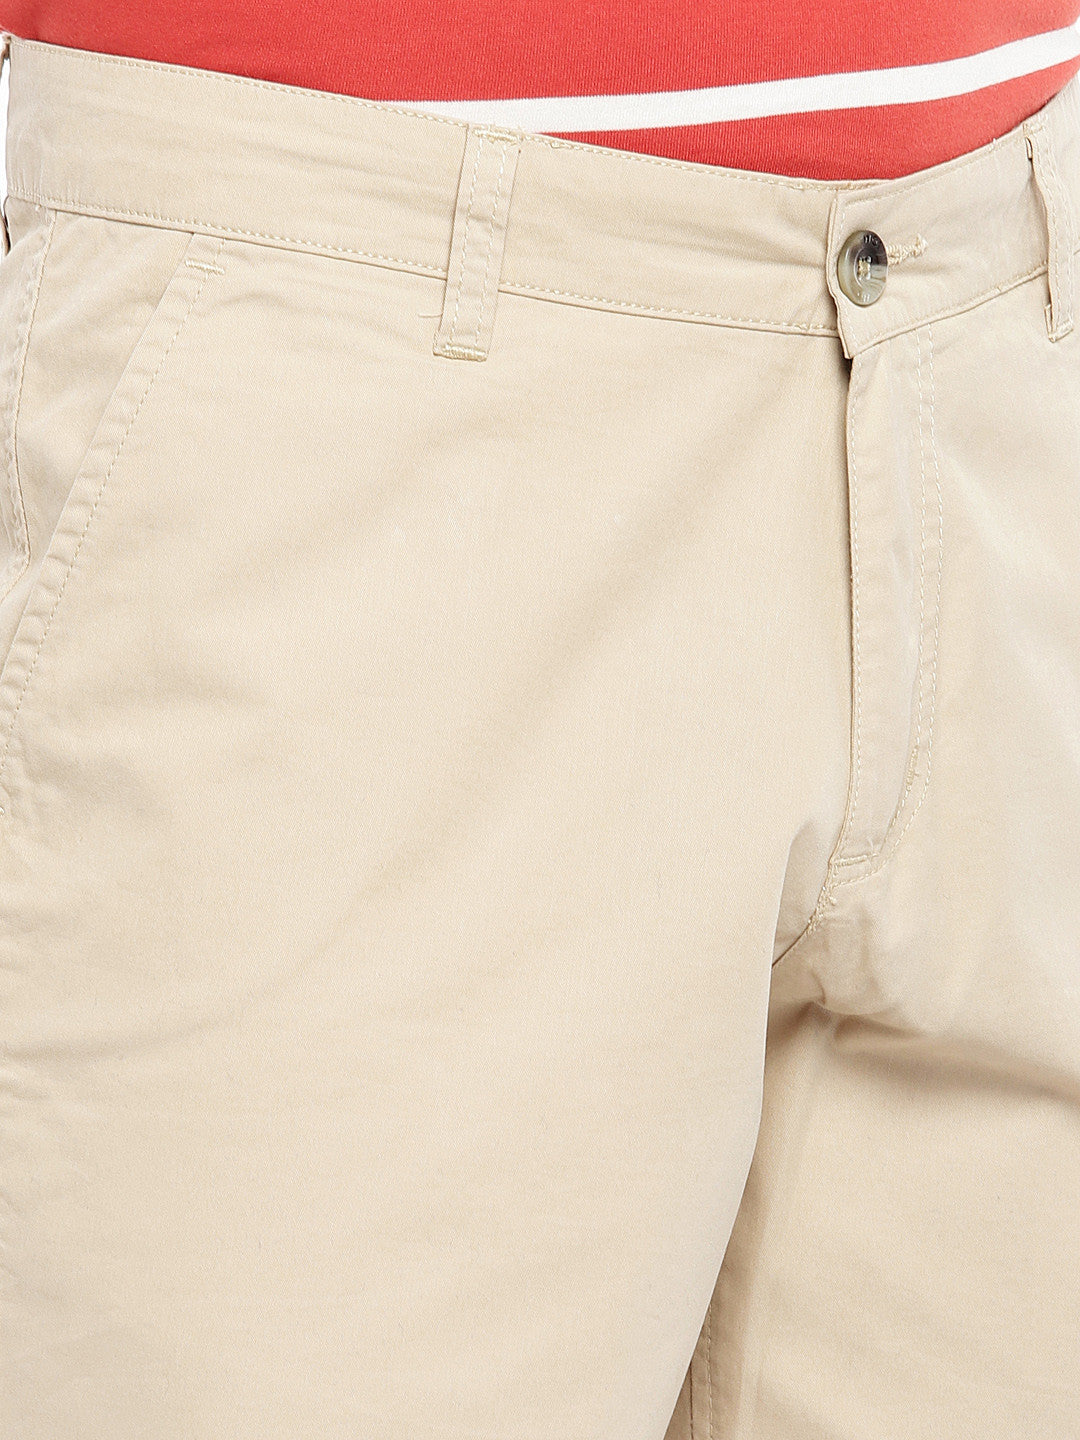 Beige Solid Regular Fit Chino Shorts-5